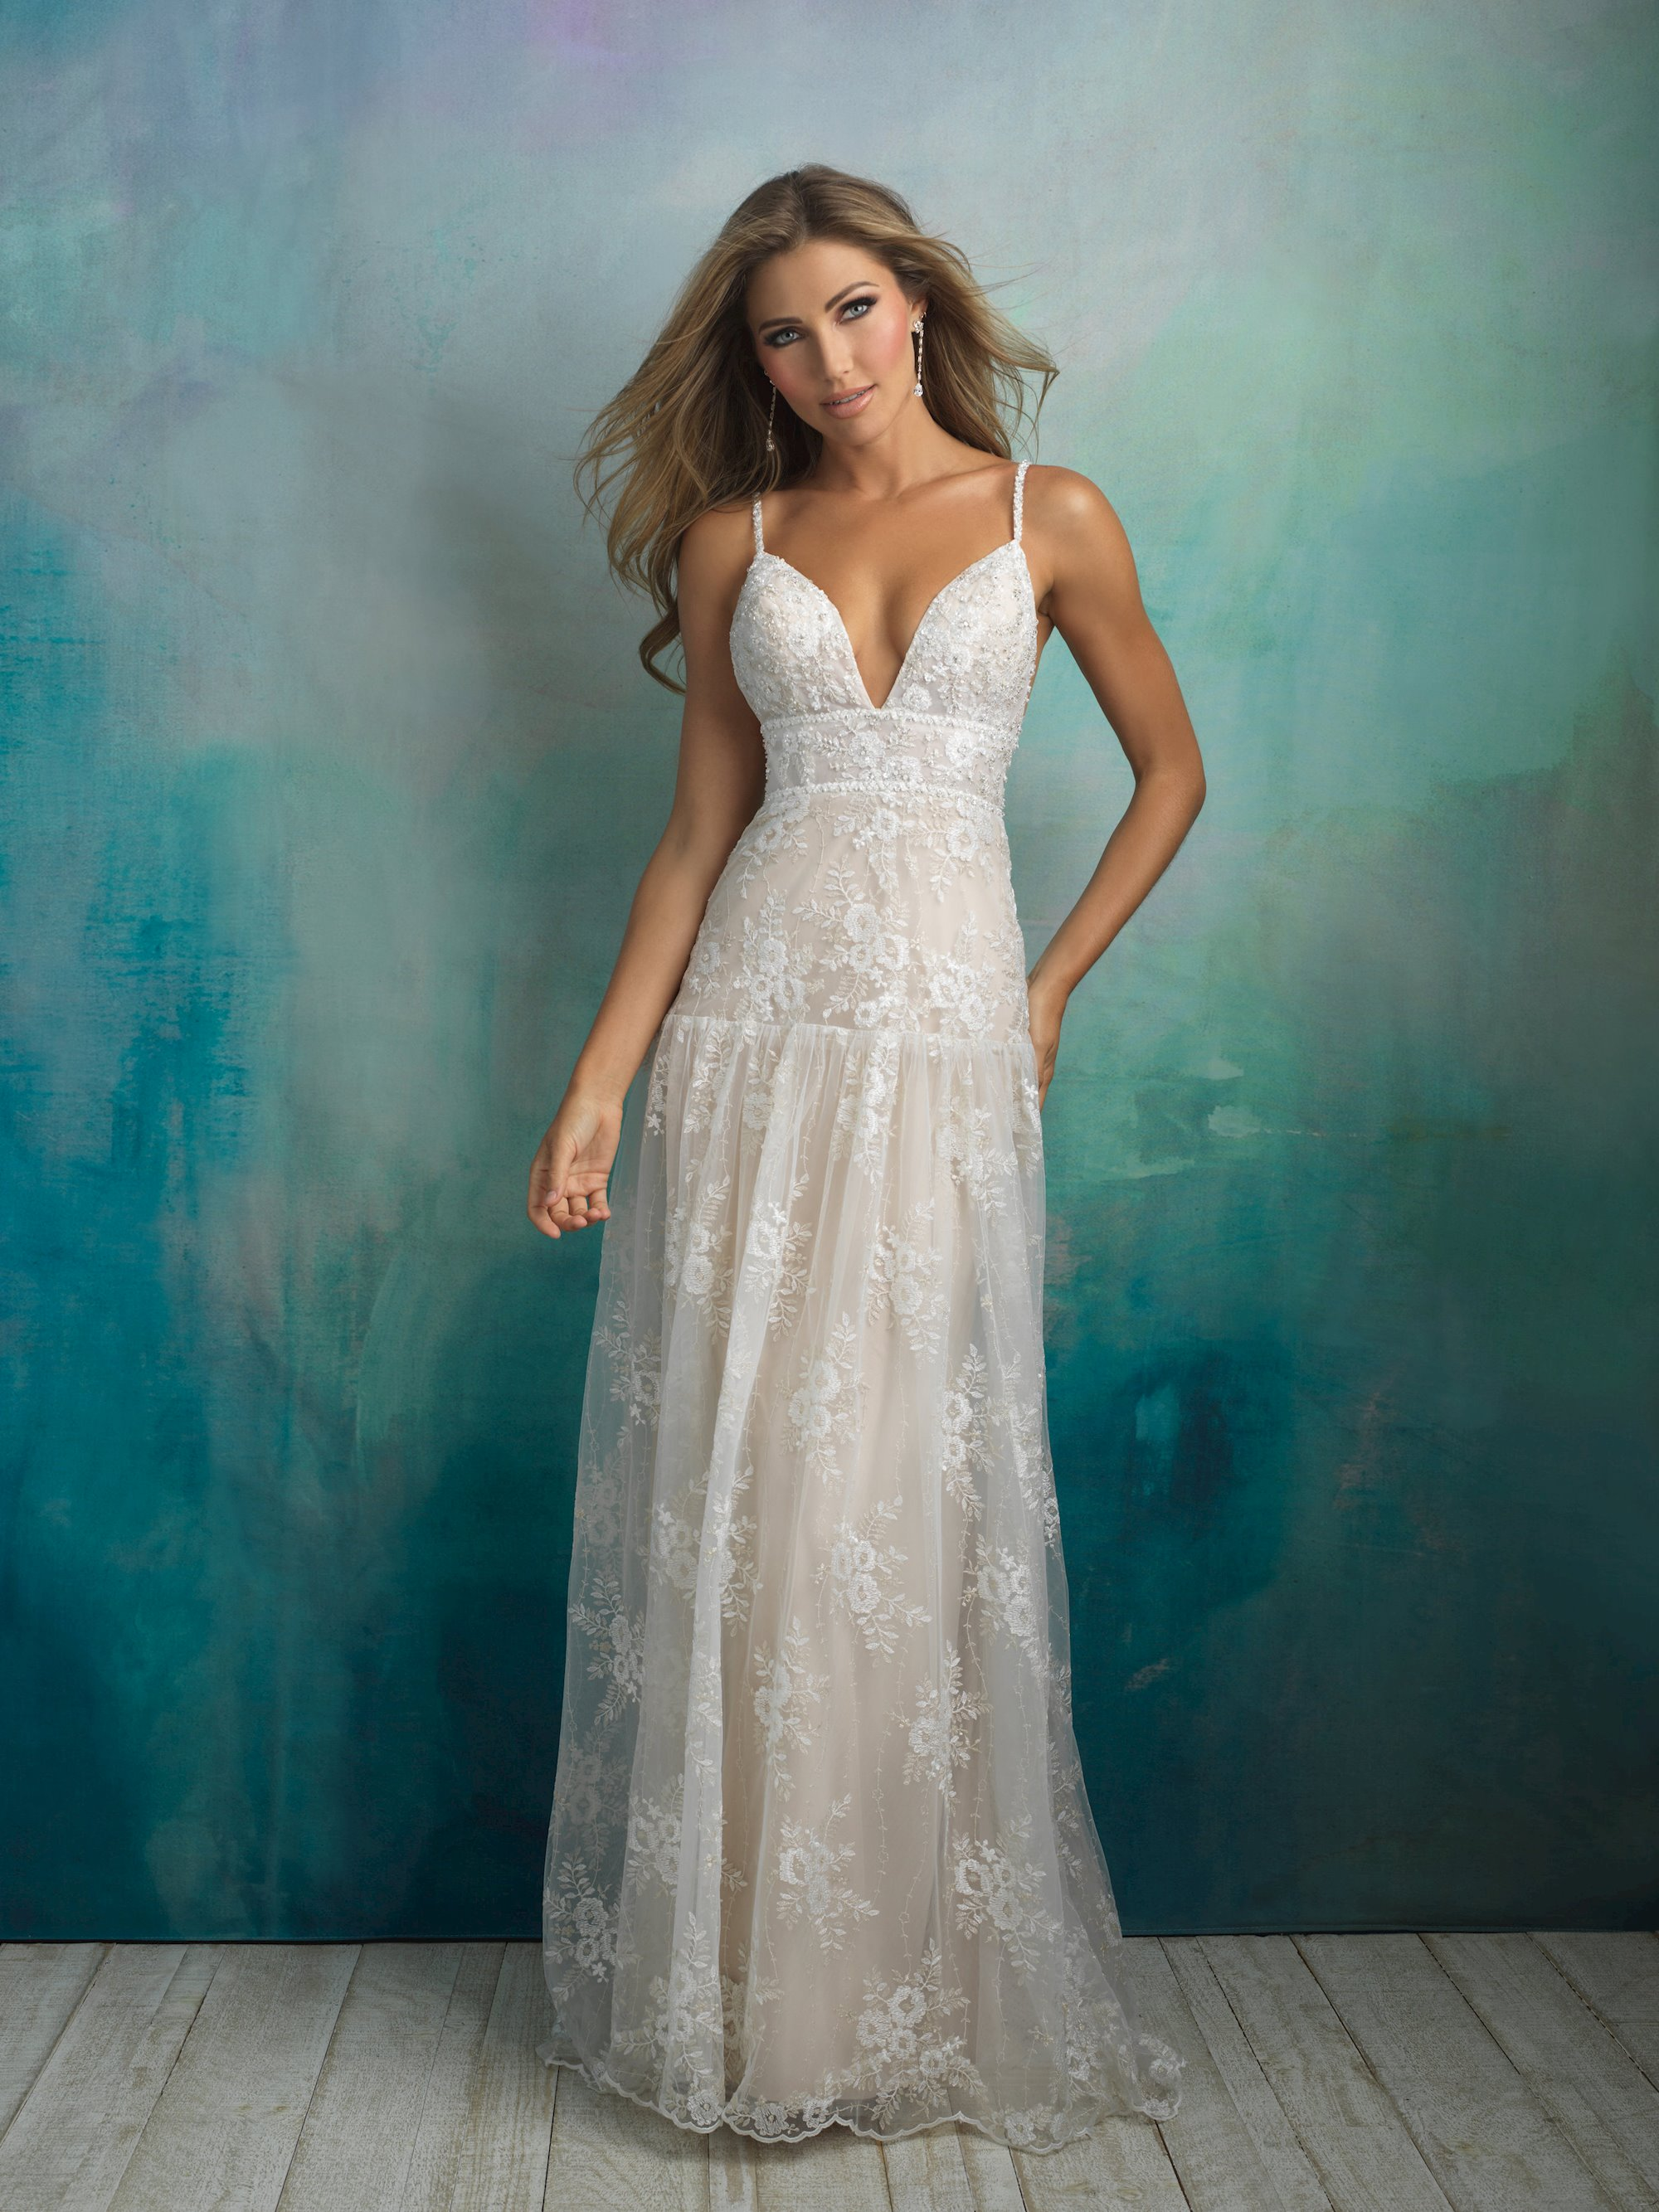 Awesome Bromley Wedding Dress Outlet Photos - All Wedding Dresses ...